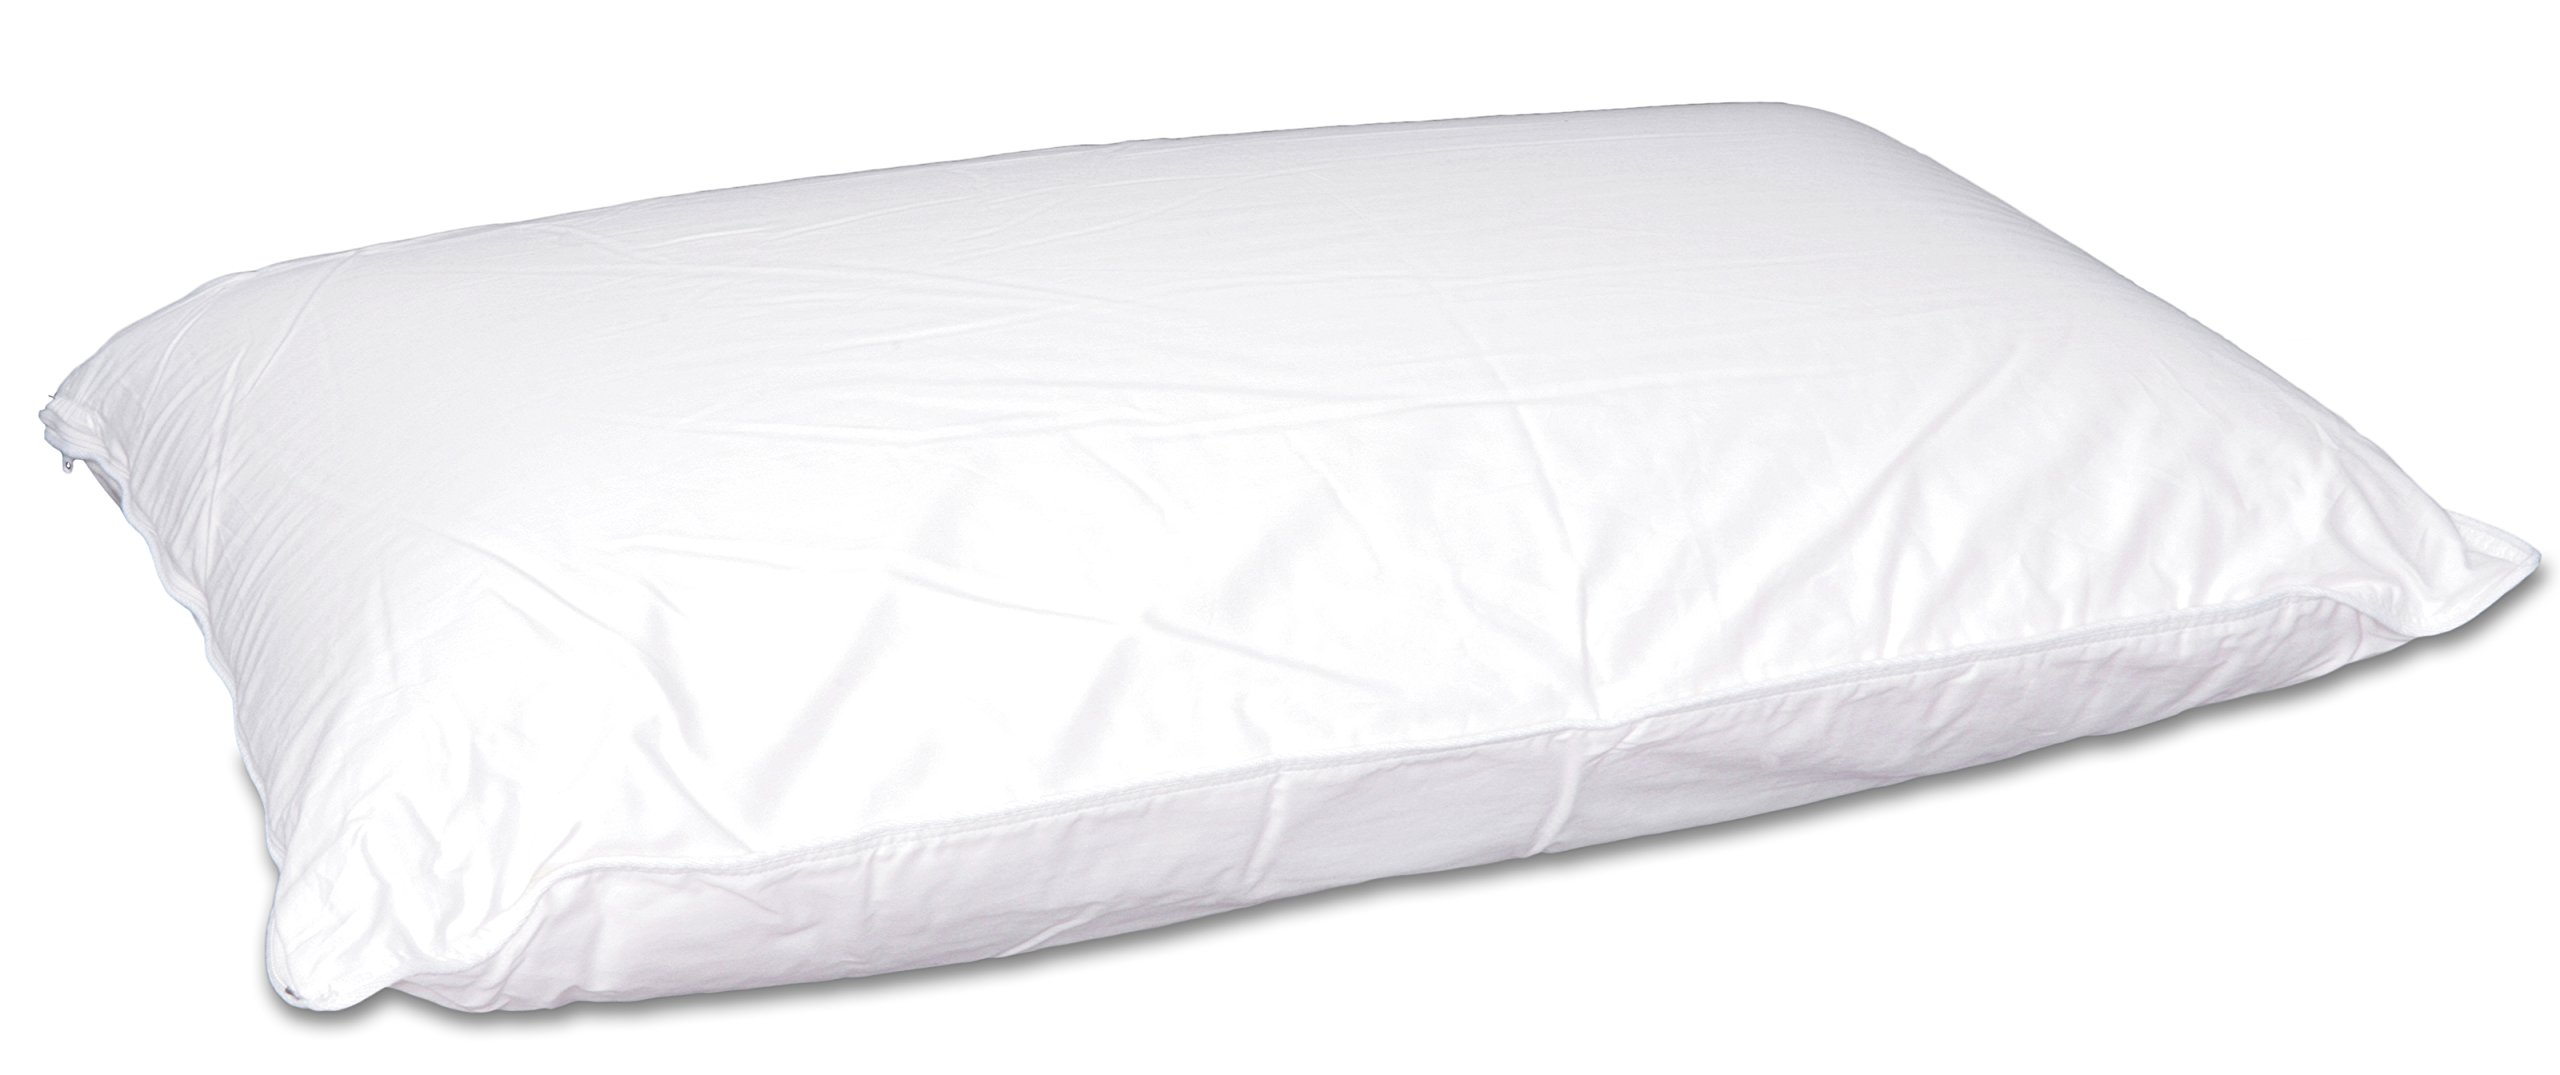 Soft Form Latex Pillow - King Talalay Latex by Deluxe Comfort